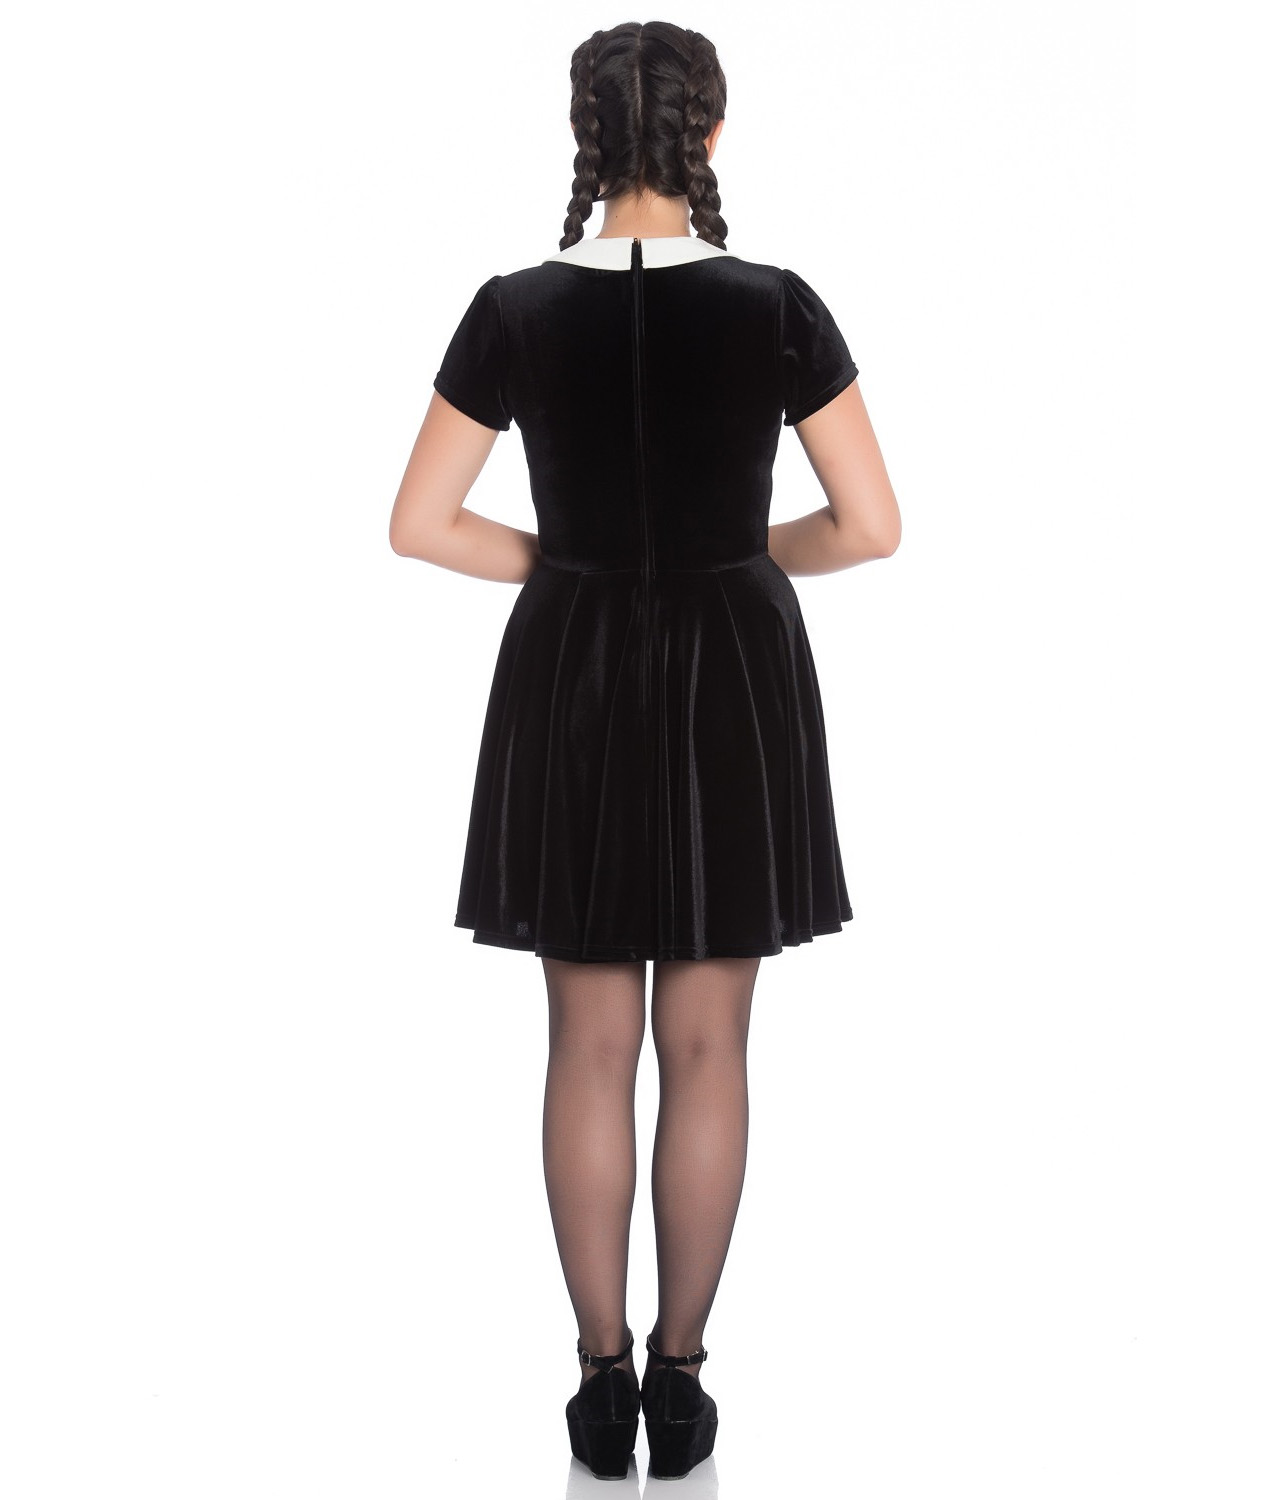 Hell-Bunny-Gothic-Mini-Skater-Dress-MISS-MUFFET-Spiders-Black-Velvet-All-Sizes thumbnail 29